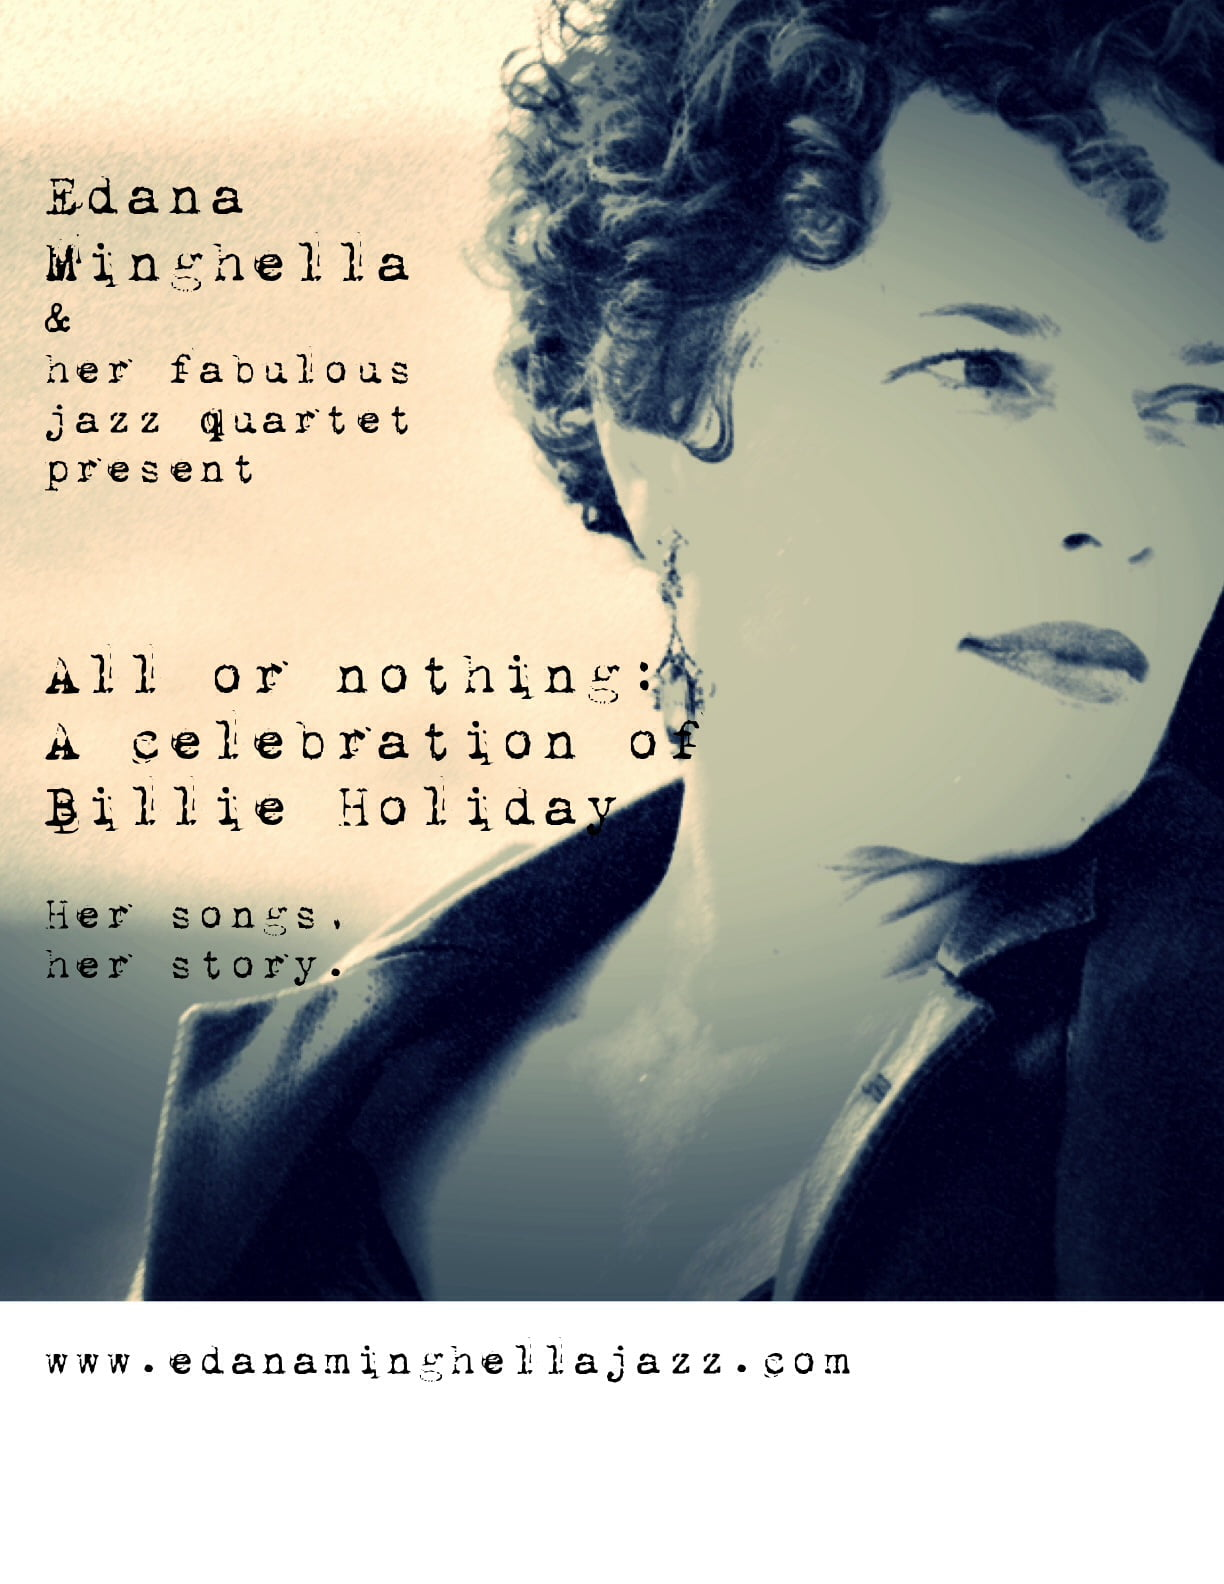 All or Nothing: Edana Minghella Quartet celebrates Billie Holiday